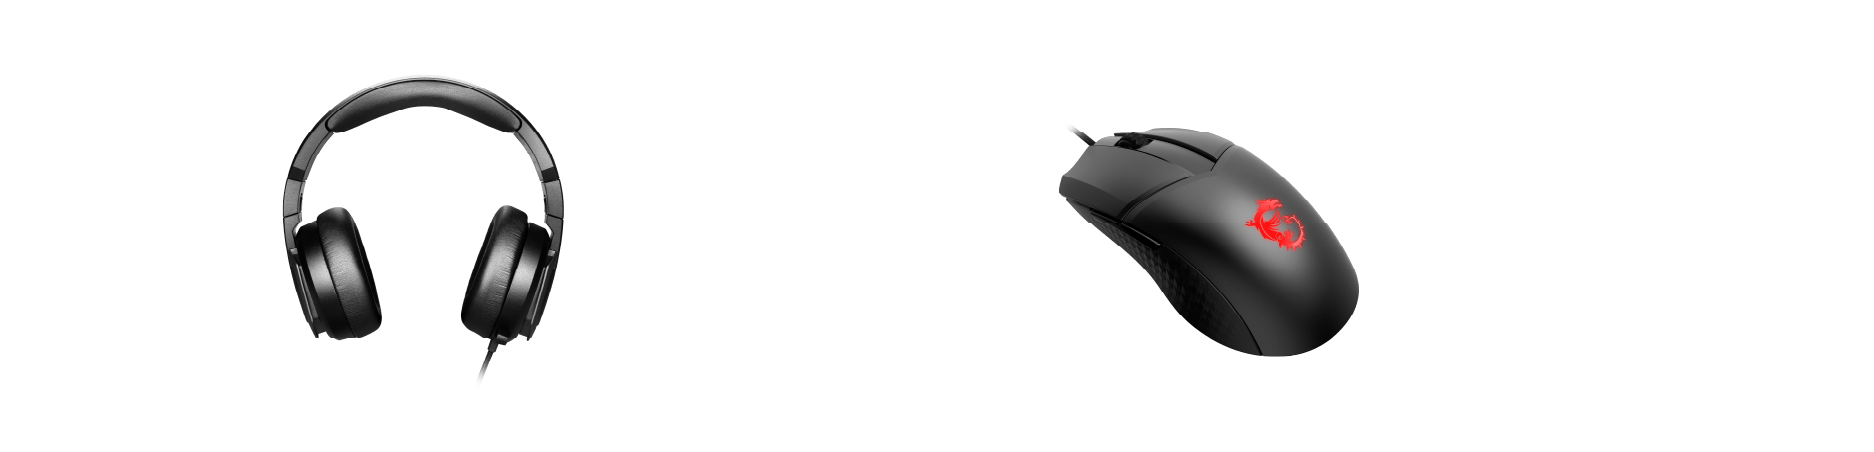 MSI Mouse + Headset